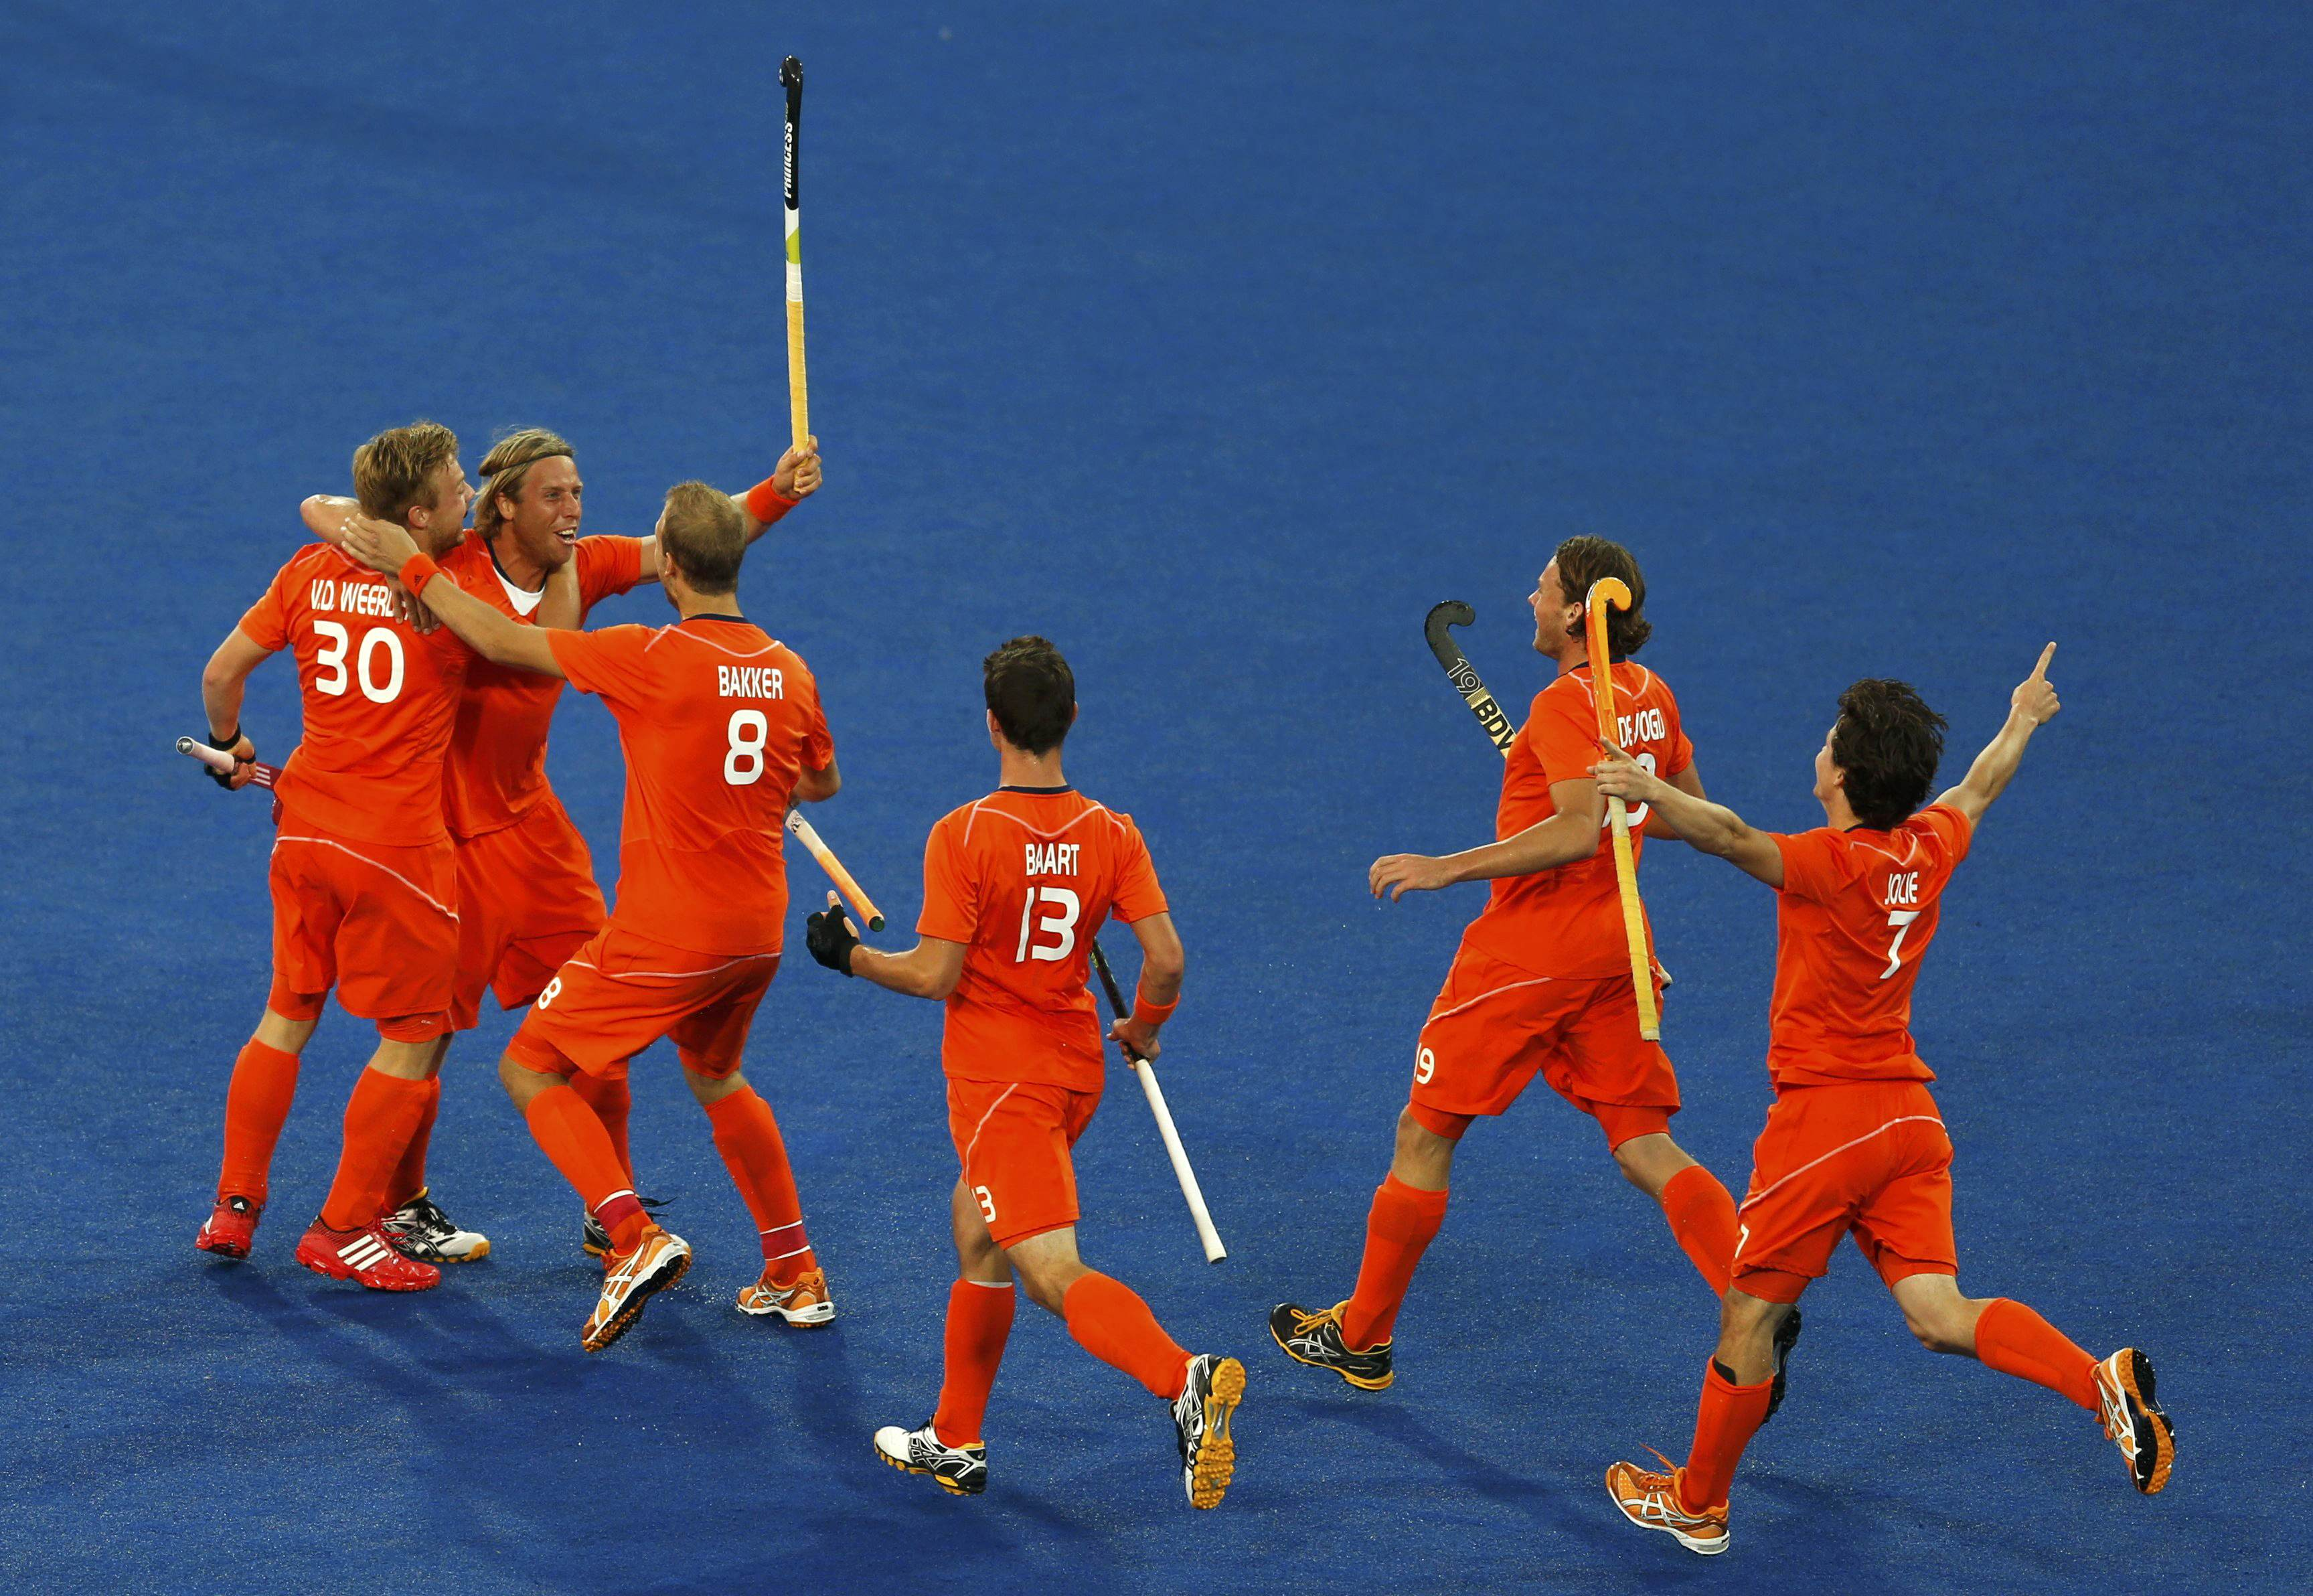 3455x2384 - Field hockey Wallpapers 32